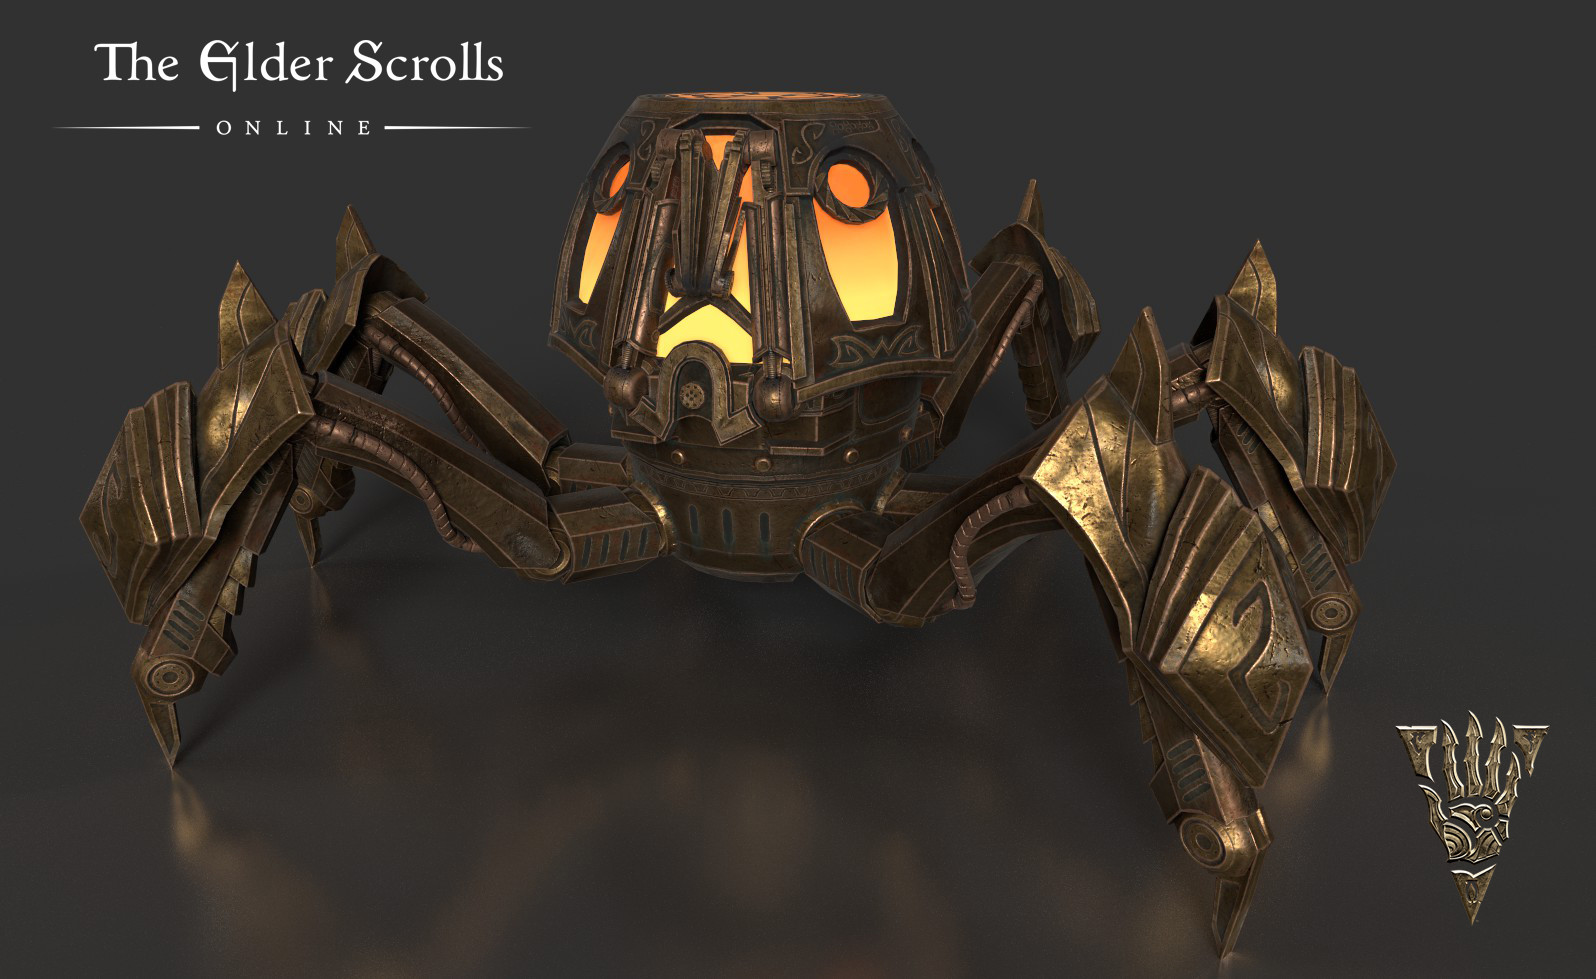 Clockwork Firepot Spider